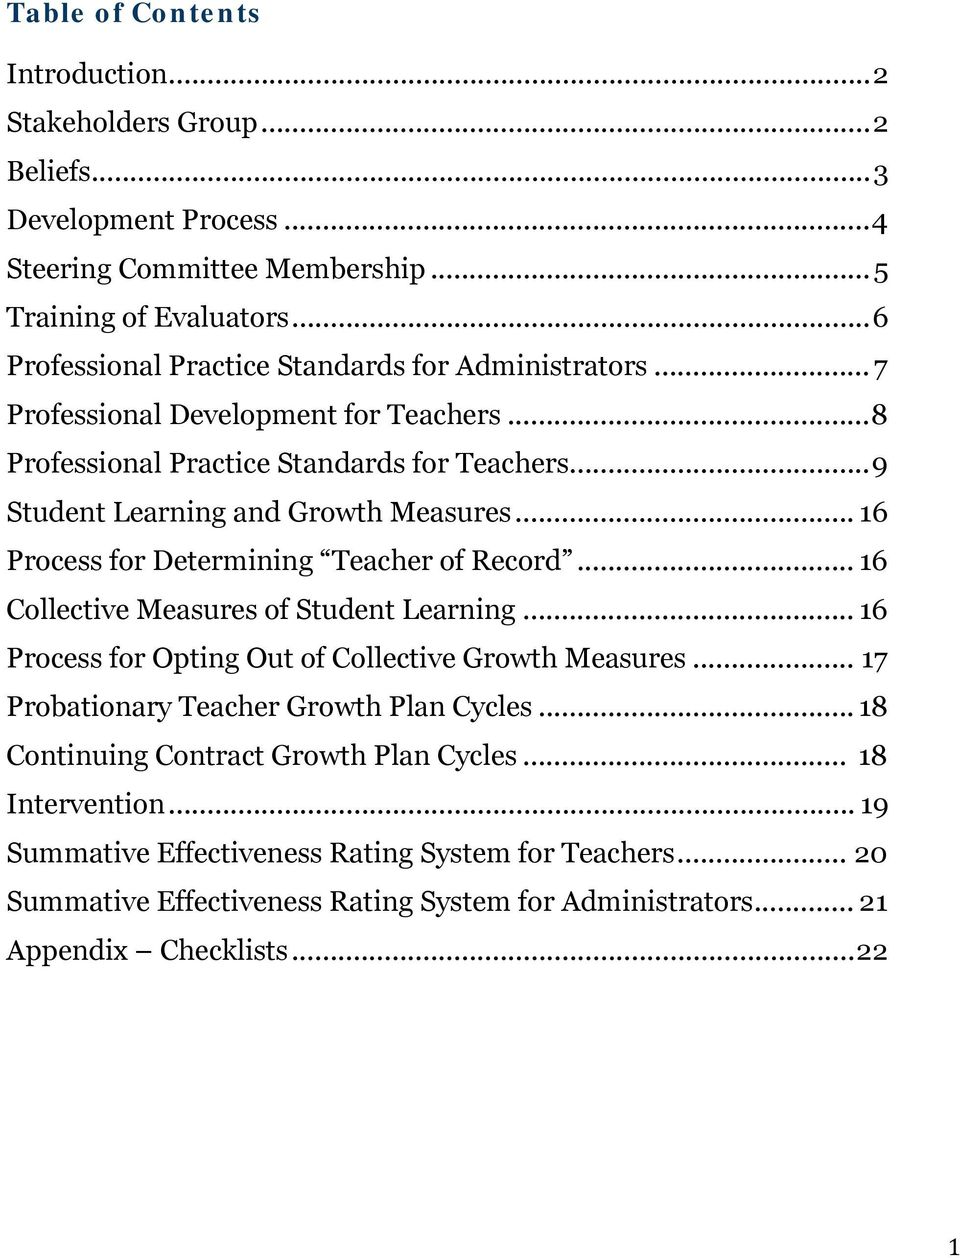 .. 16 Process for Determining Teacher of Record... 16 Collective Measures of Student Learning... 16 Process for Opting Out of Collective Growth Measures.